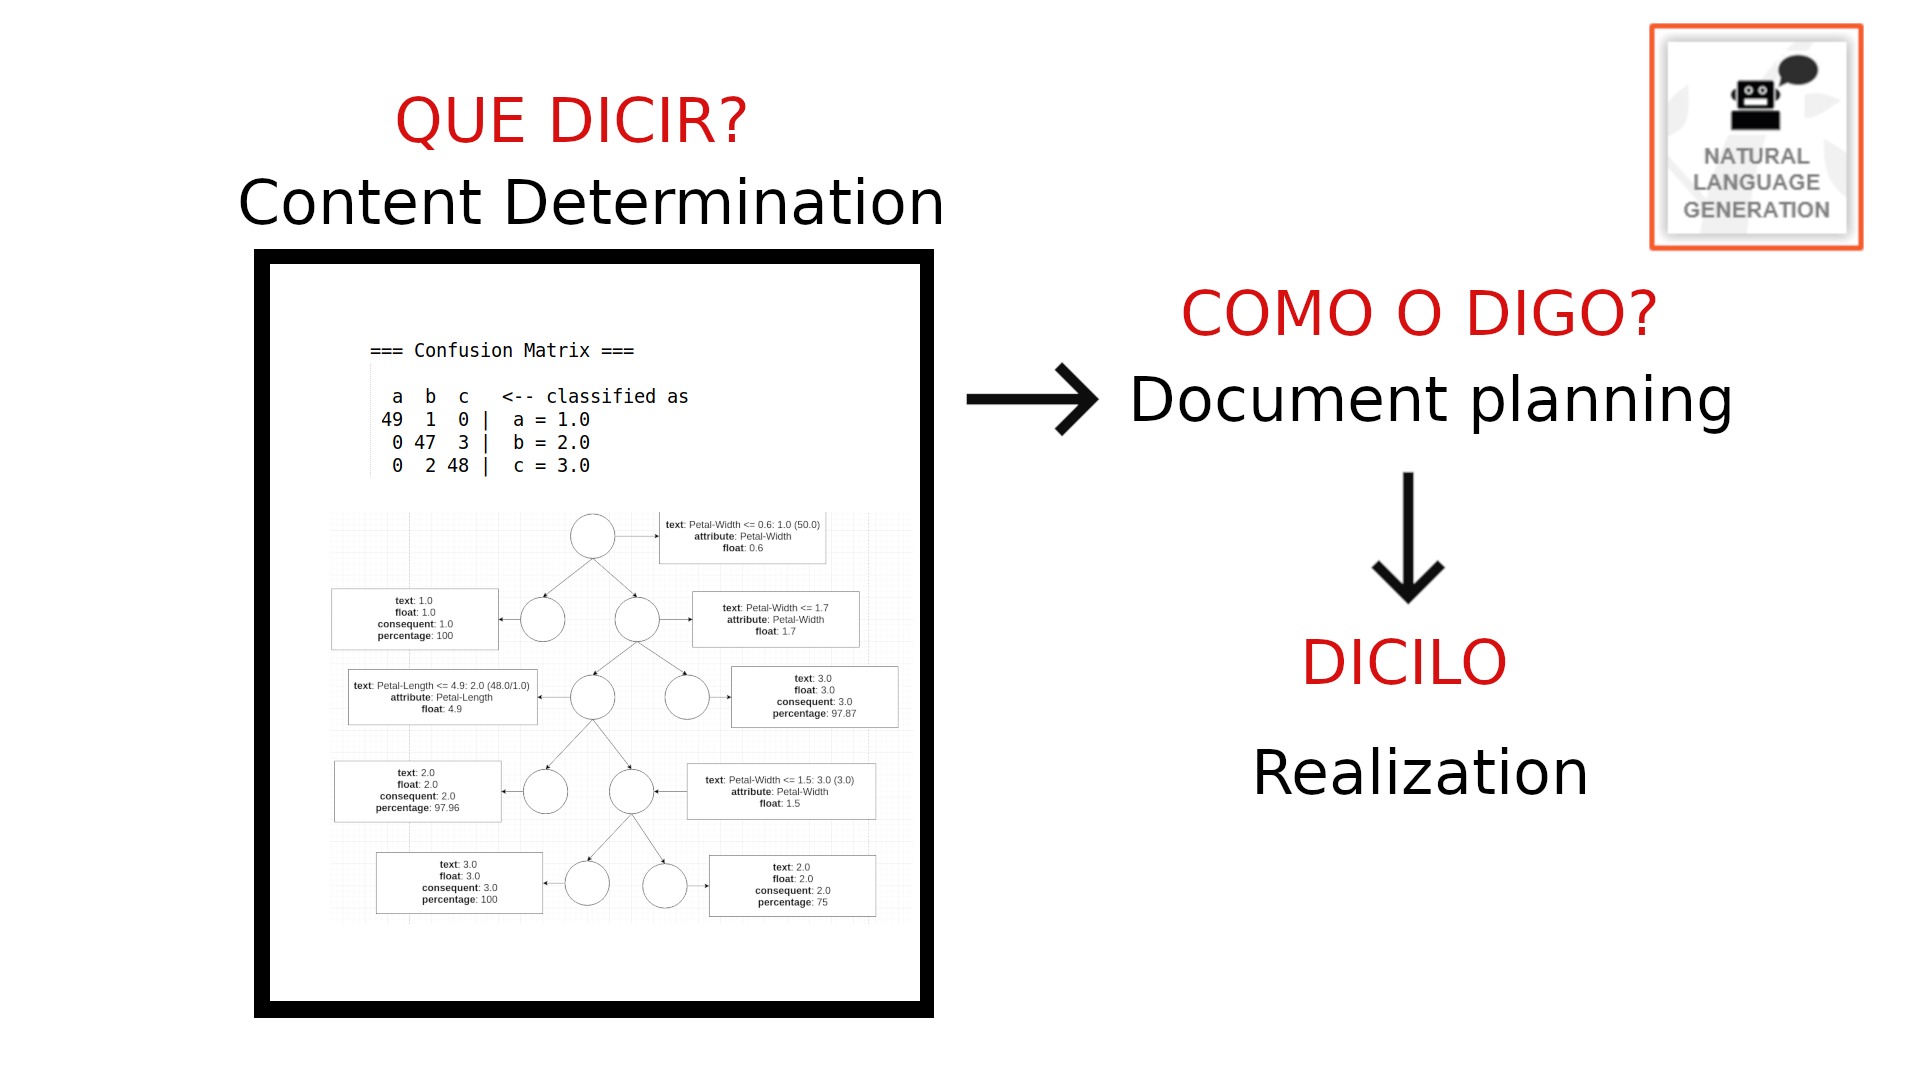 documentacion/memoria/figuras/data2text-pres.png